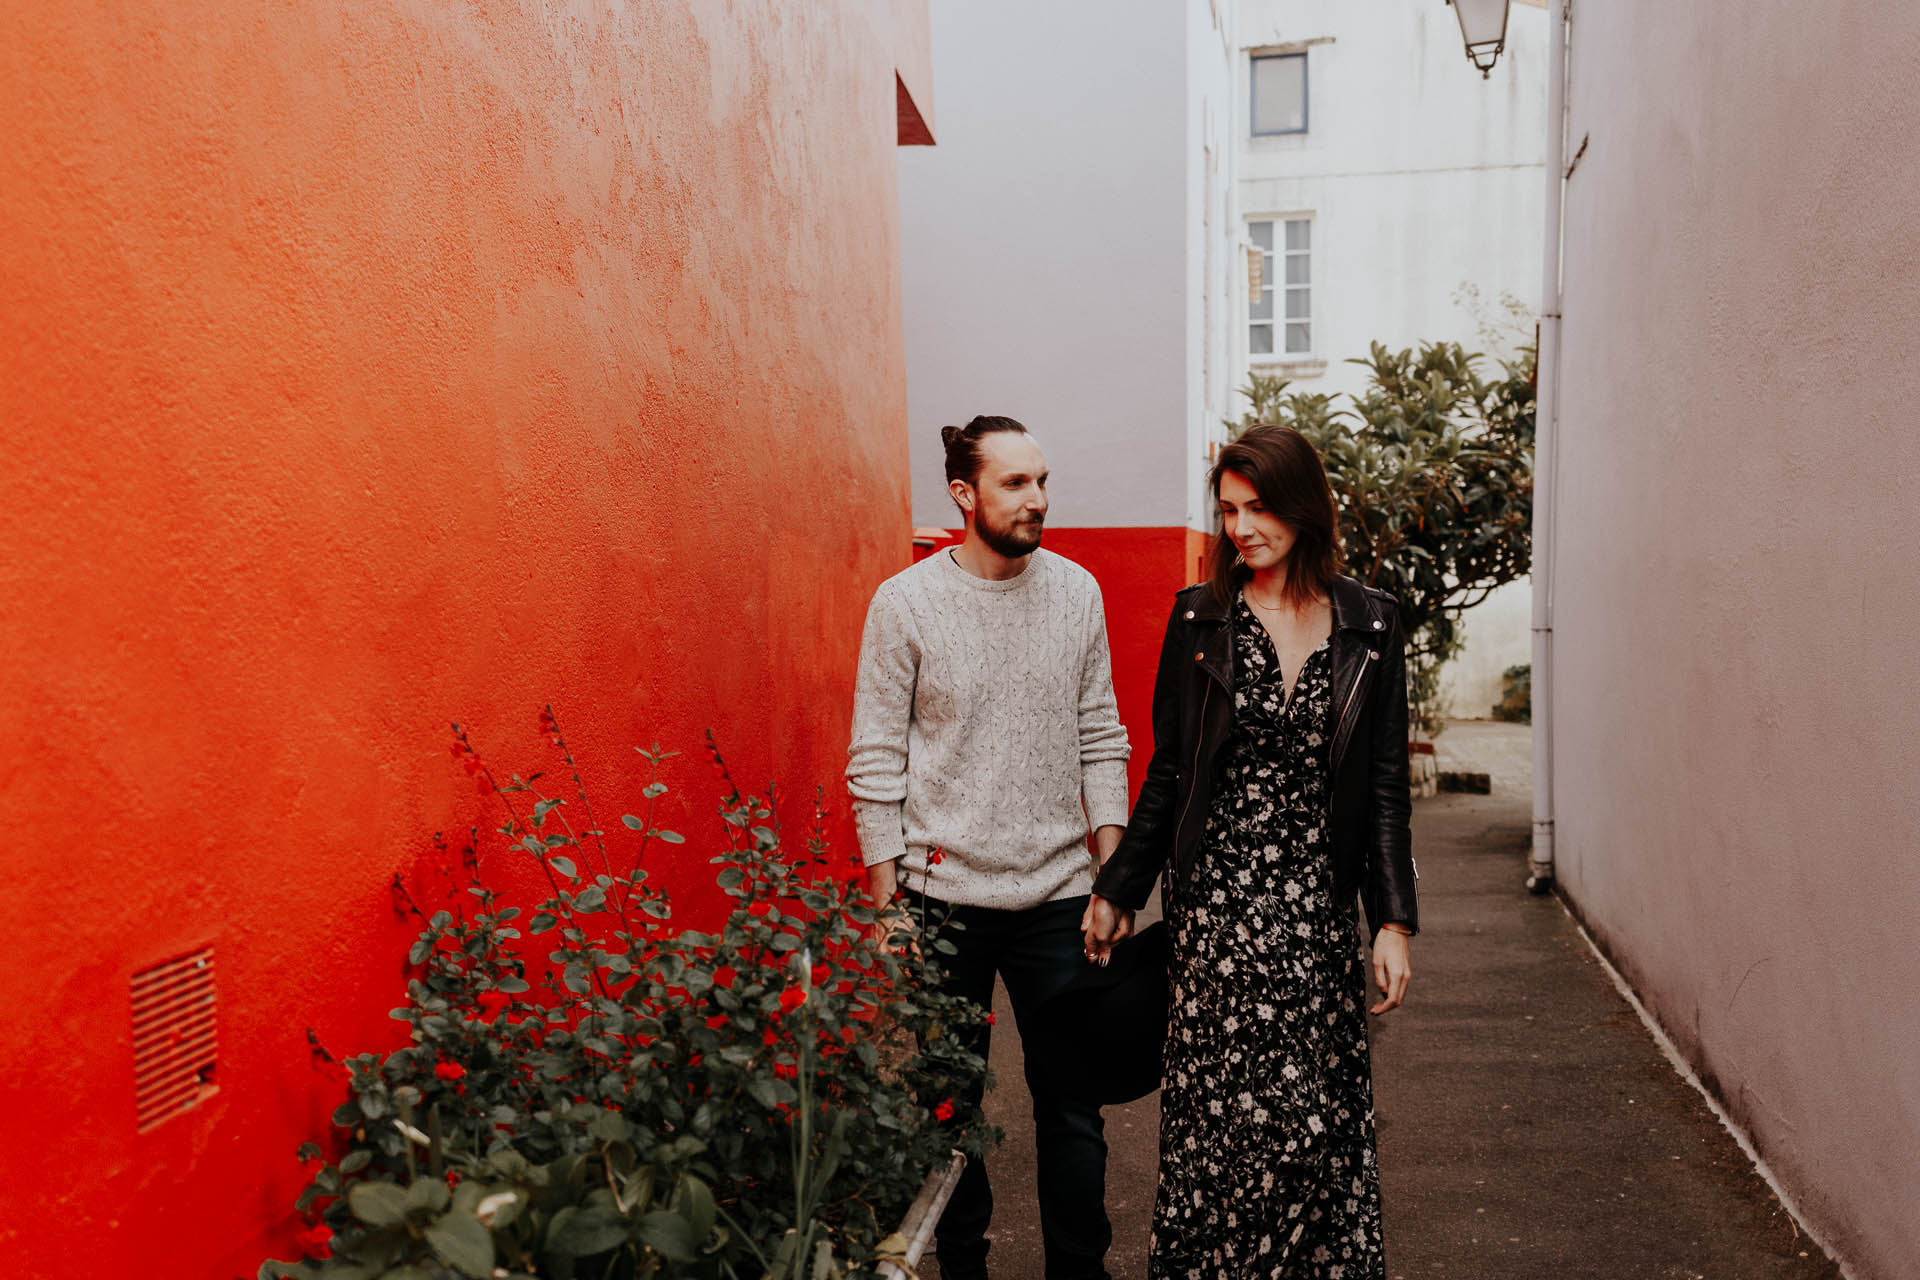 engagement_session_trentemoult_flavie_nelly_photographe_nantes-8